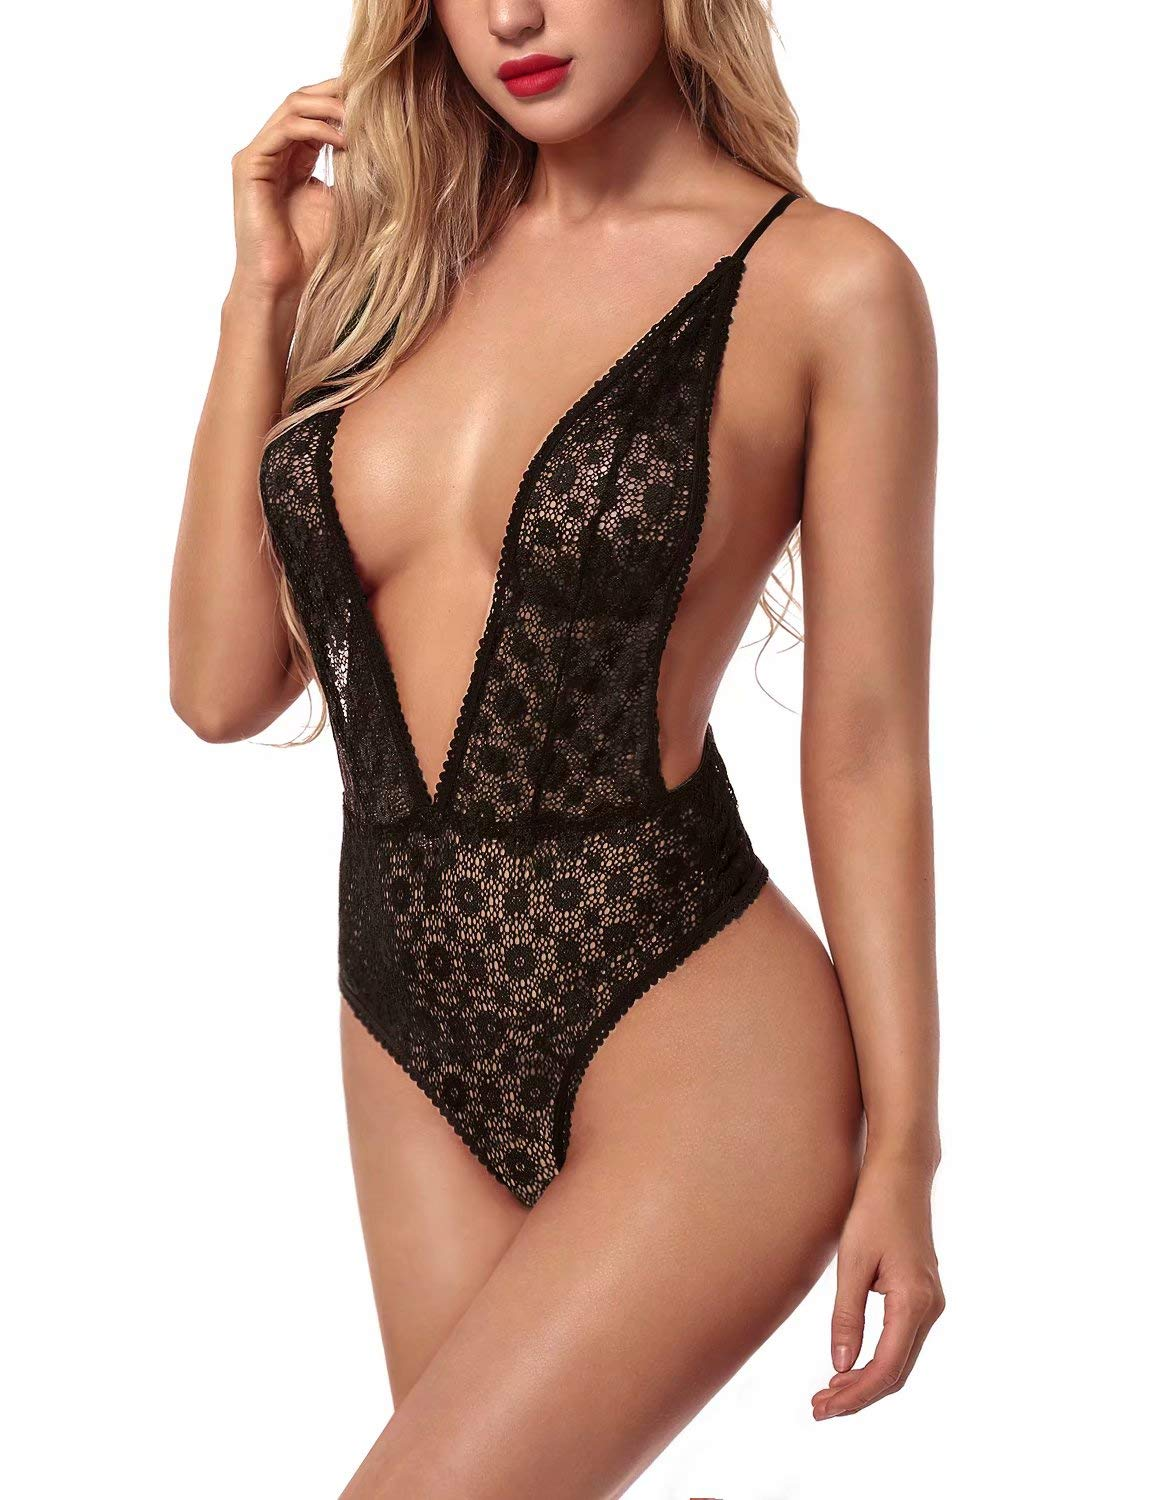 Garmol Women Lingerie One Piece Lace Teddy Plunging Bodysuit Crisscross Straps Nightwear Black Small - wiihuu